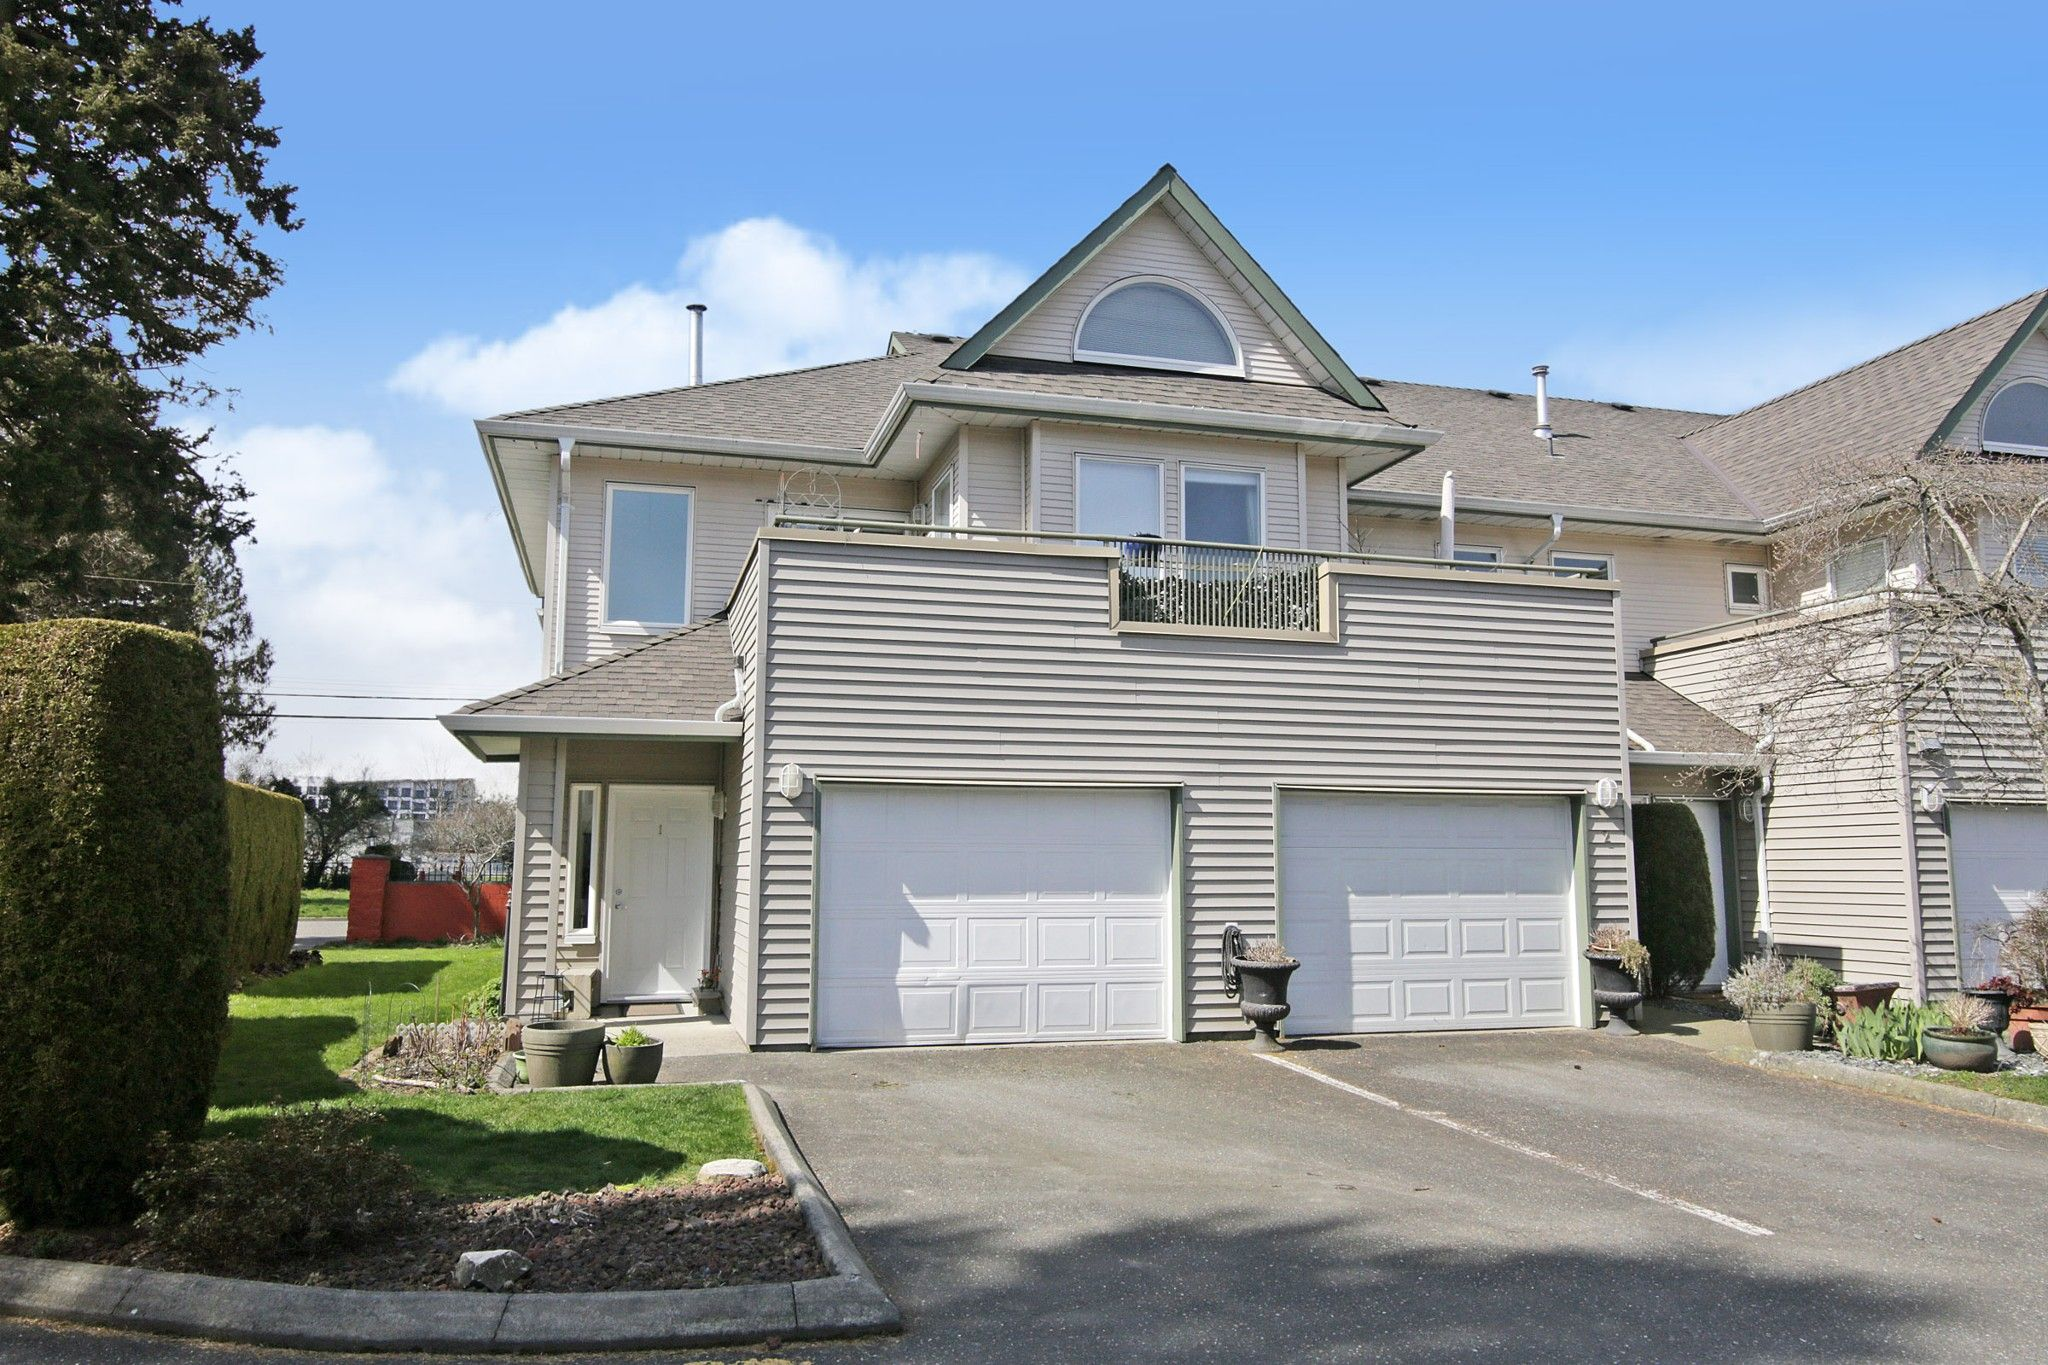 """Main Photo: 1 9470 HAZEL Street in Chilliwack: Chilliwack E Young-Yale Townhouse for sale in """"Hawthorne Place"""" : MLS®# R2562539"""